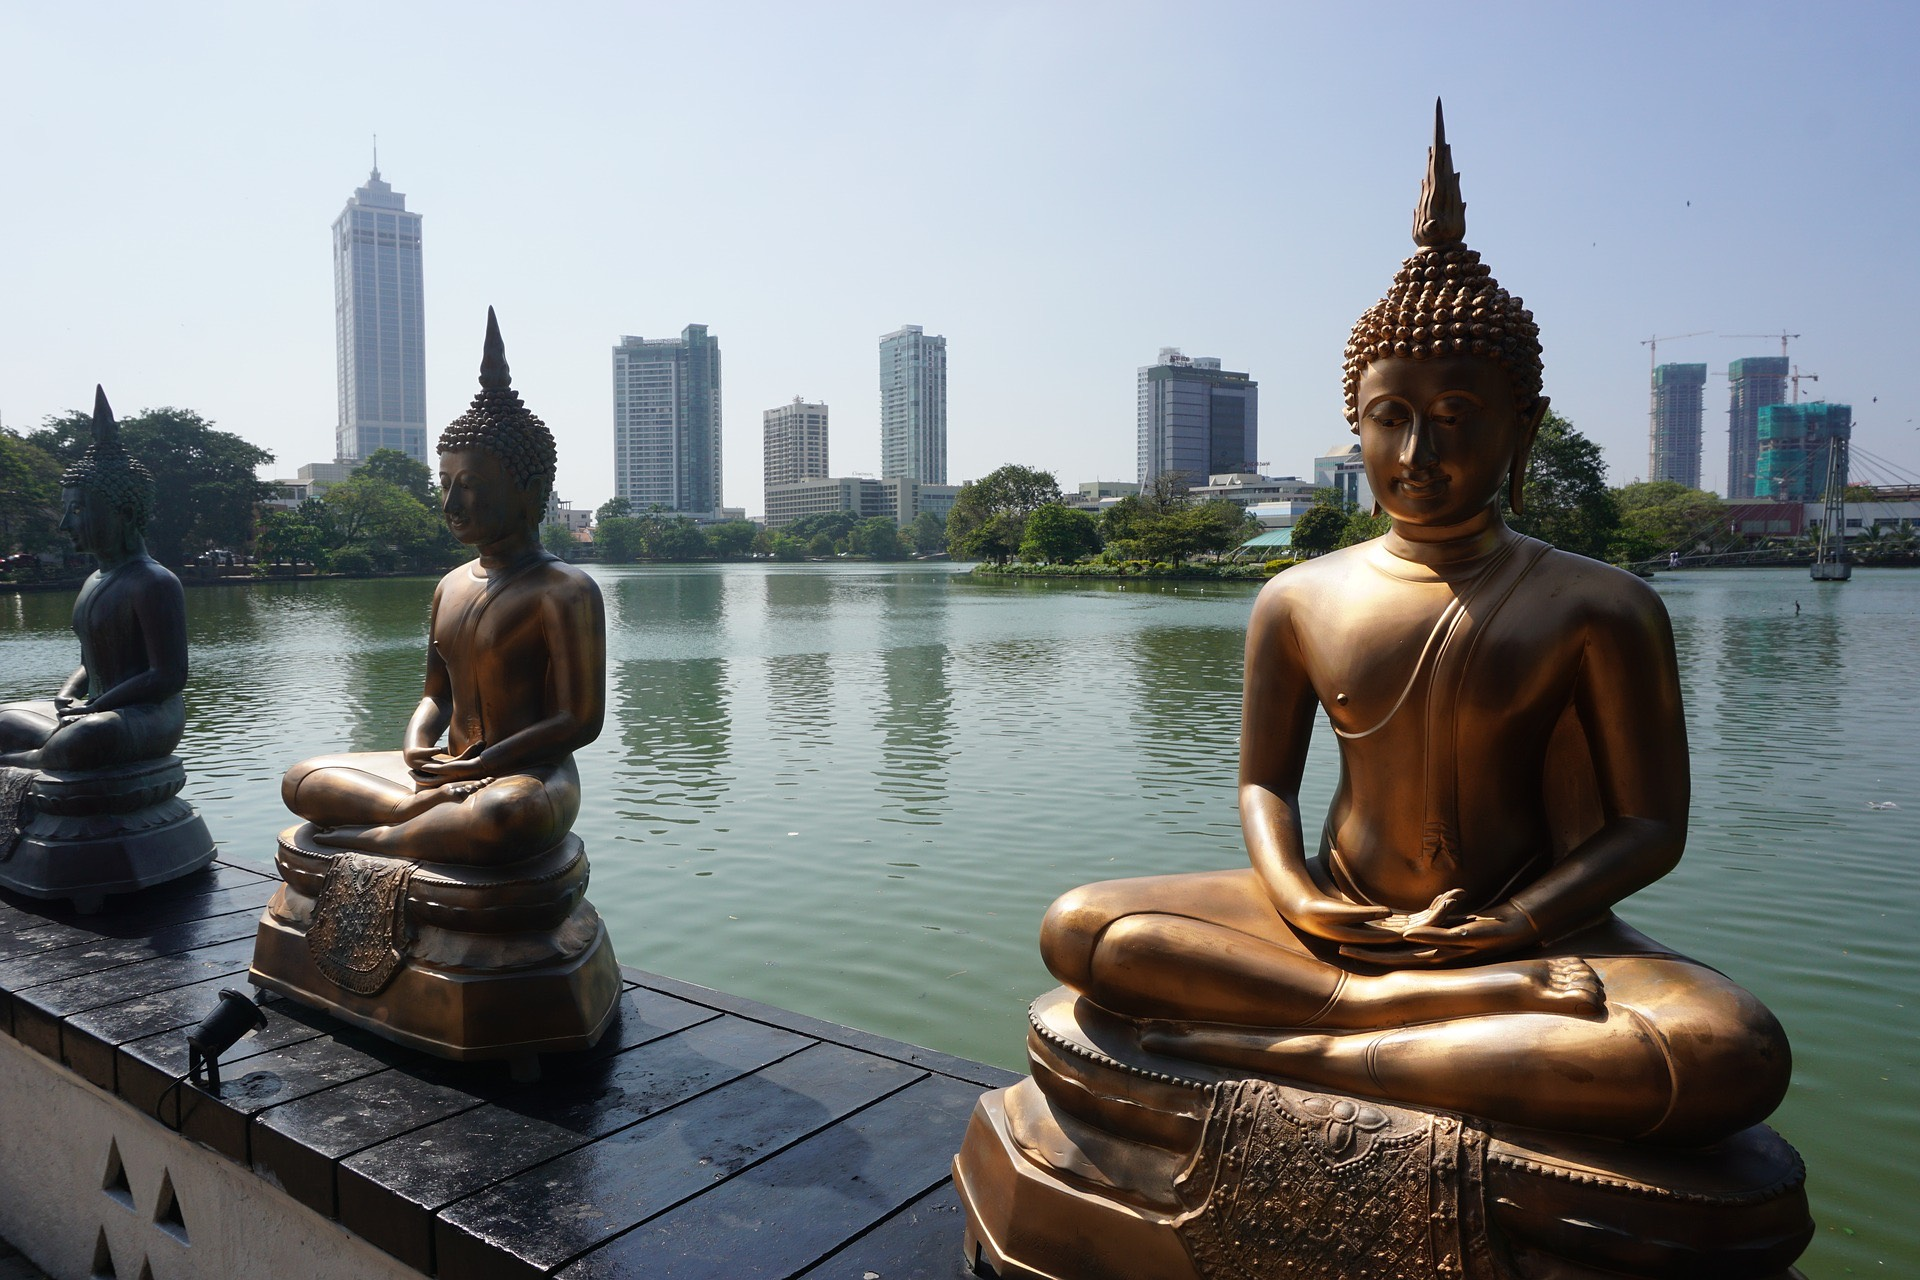 Colombo is Sri Lanka's vibrant capital city